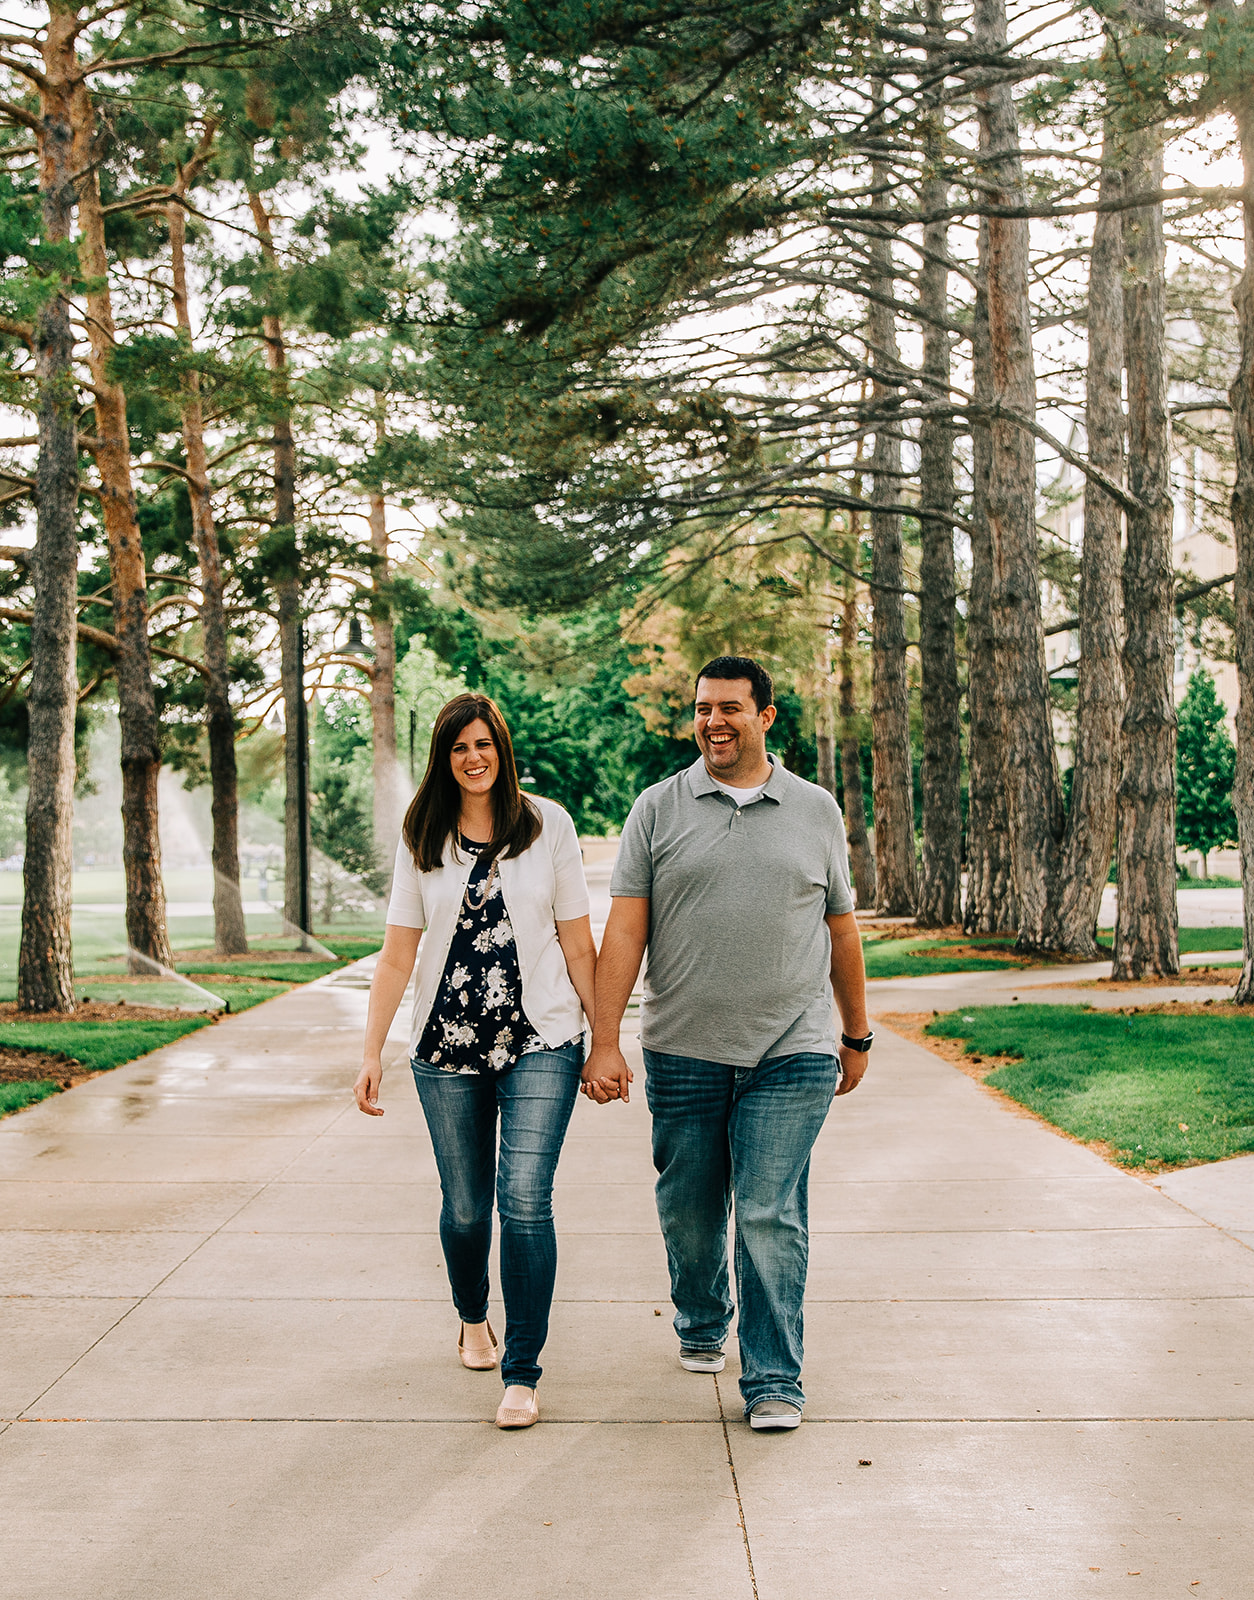 Engagement photo shoot on a college campus Logan, Utah engagement photographer Bella Alder Photography professional wedding photographer in Cache Valley and the surrounding areas #bellaalderphoto #engagements #ldsengagements #engagementsession #engagementphotographer #ldsphotographer #loganutahphotographer